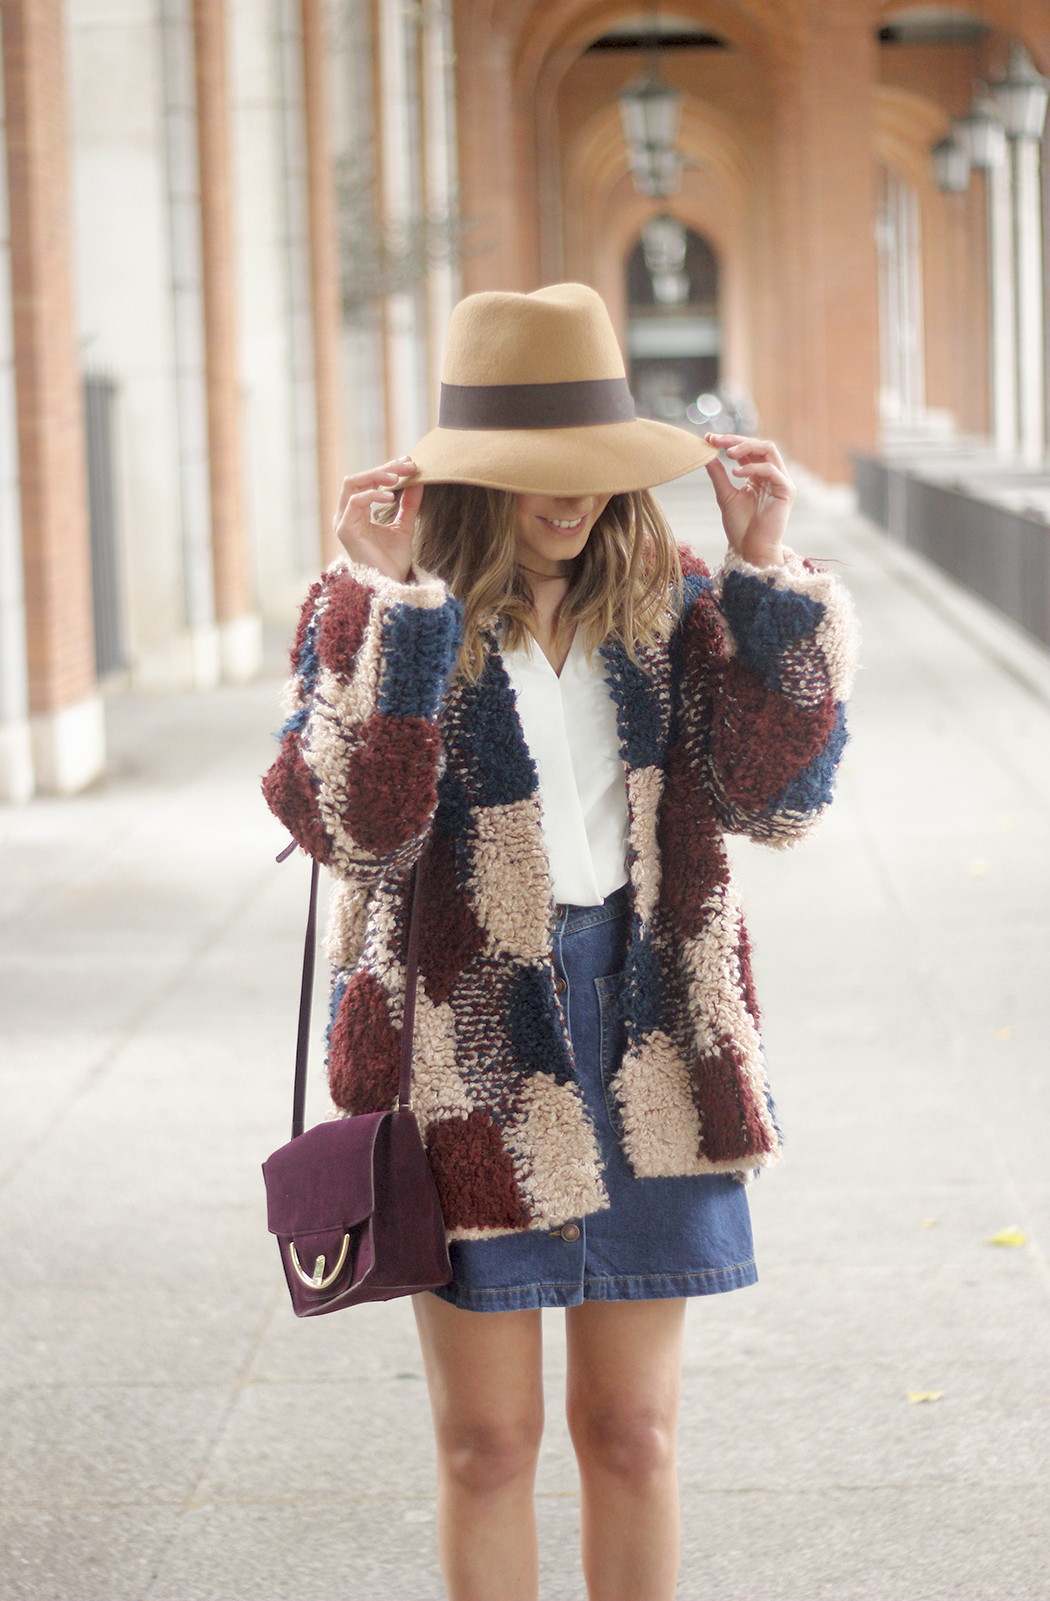 Cardigan Denim Skirt Camel Hat Burgundy Bag outfit08